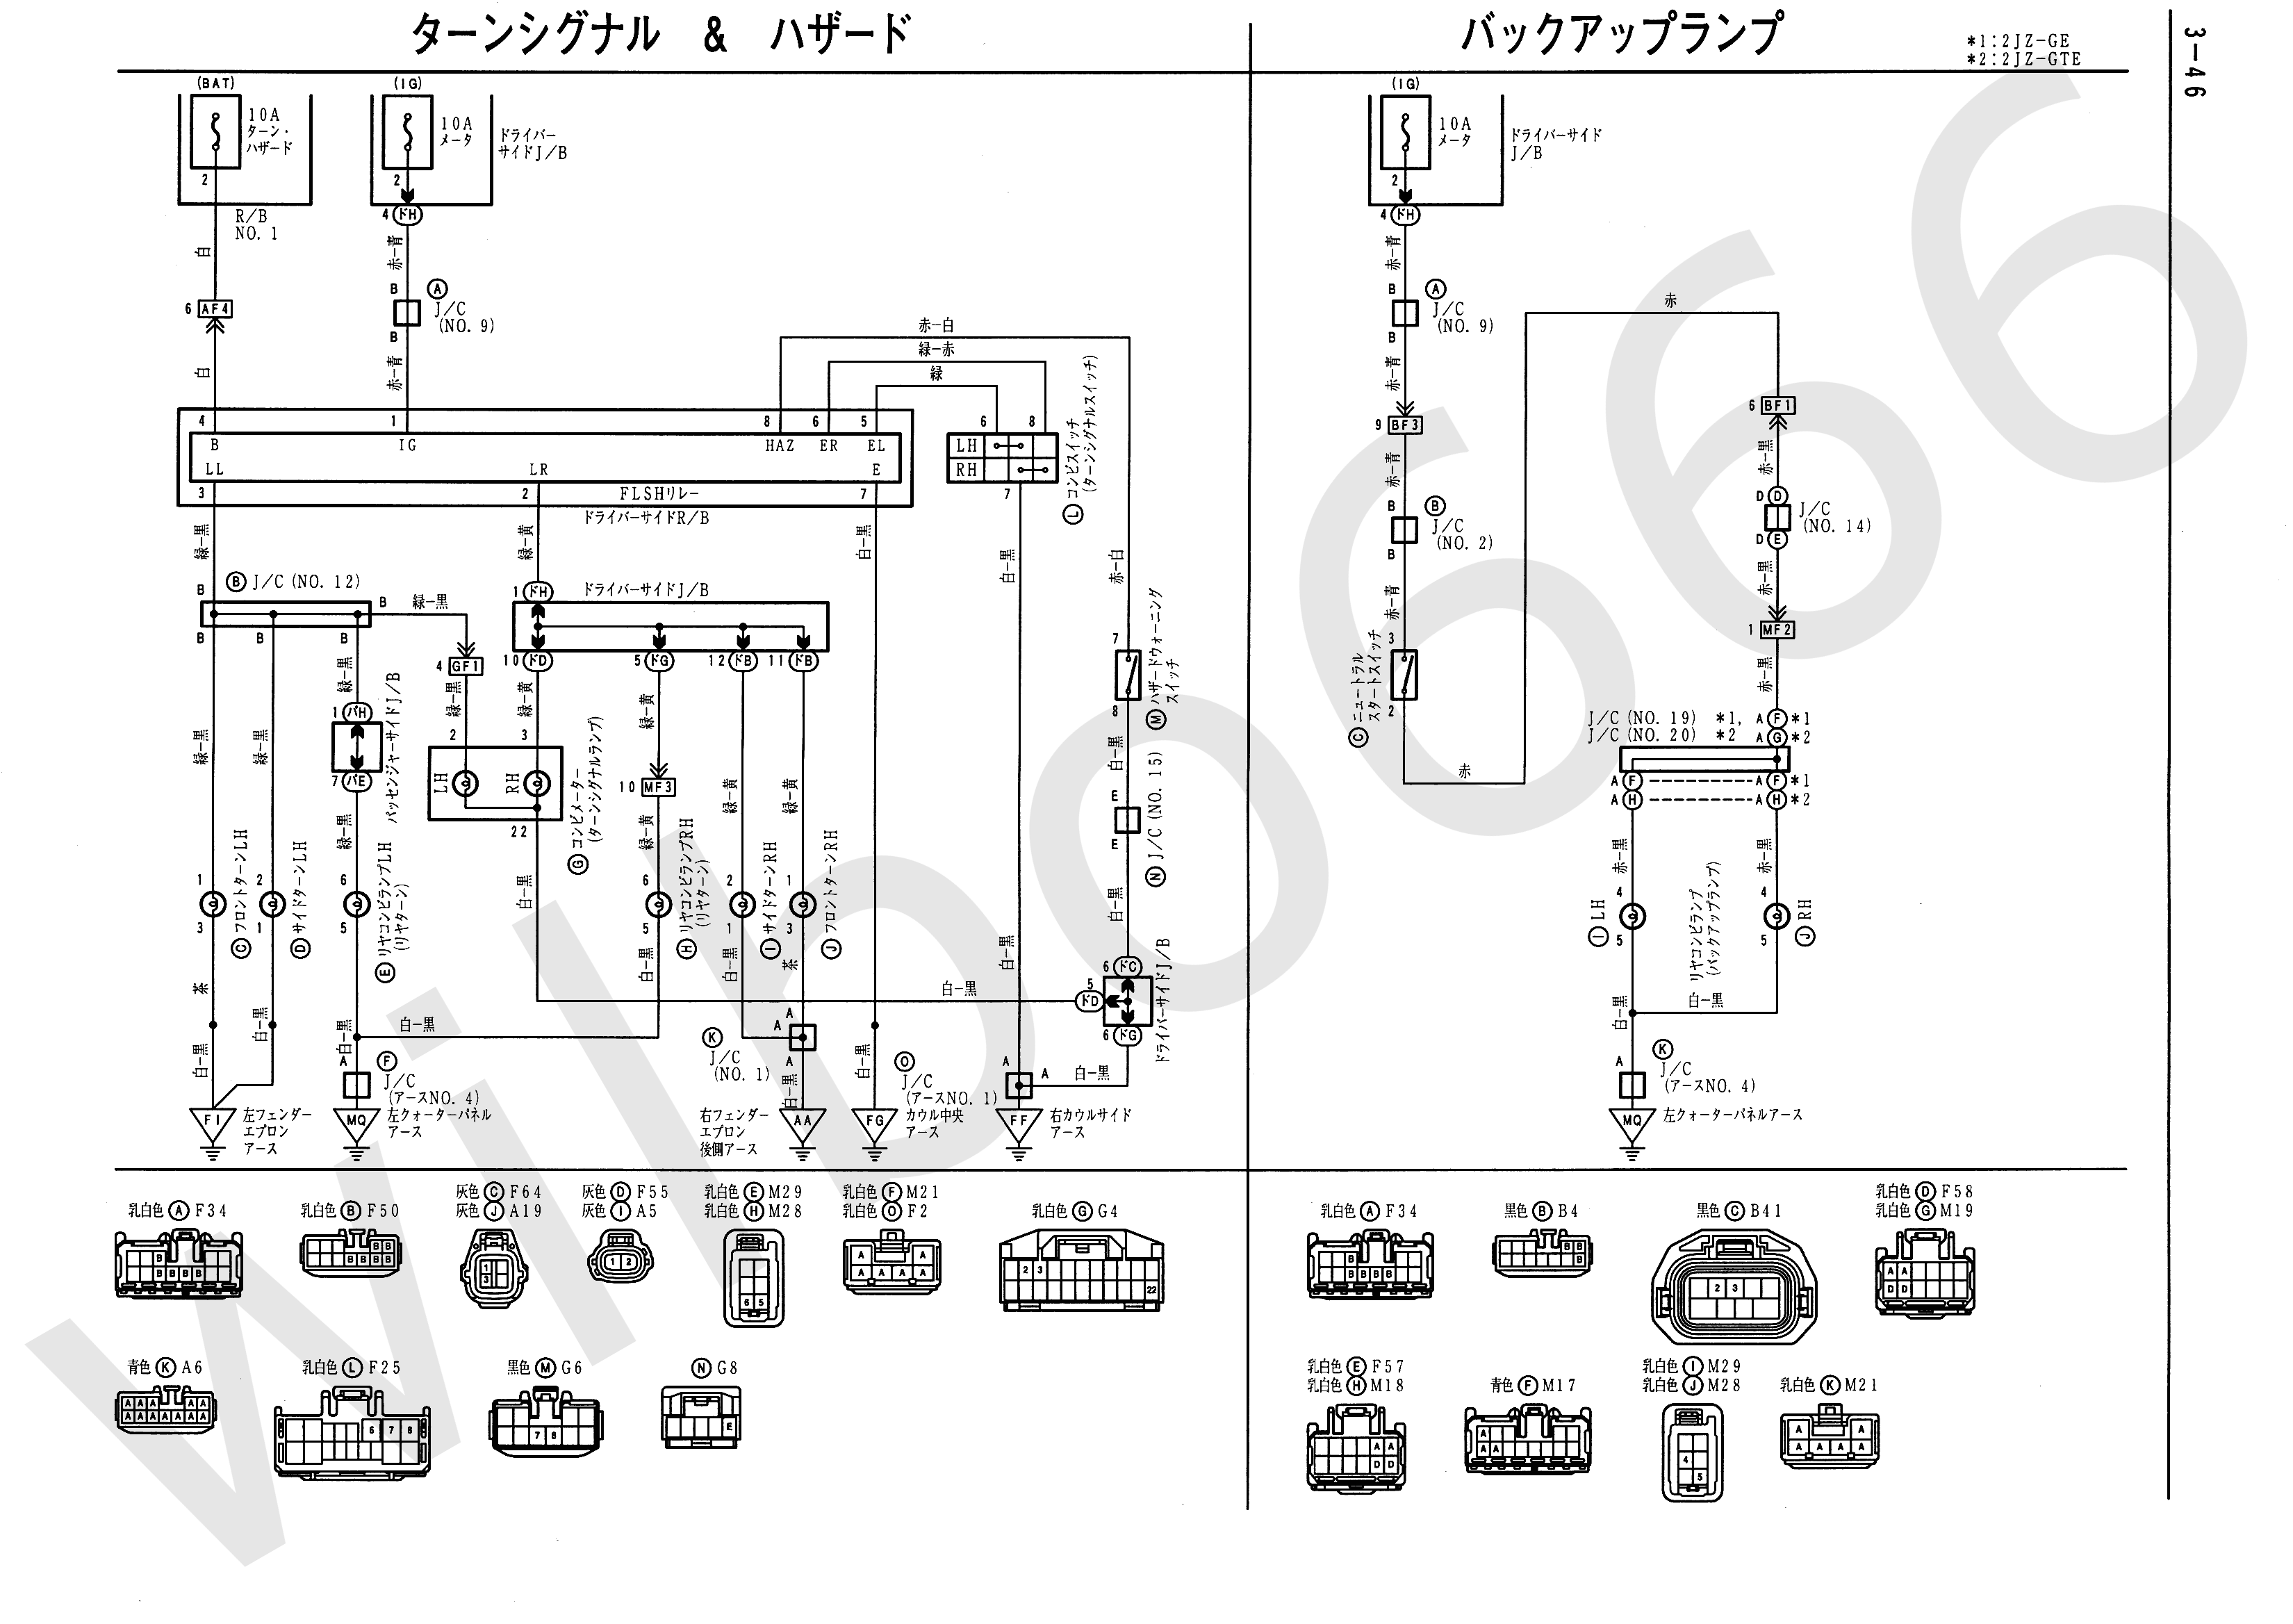 JZS161 Electrical Wiring Diagram 6748505 3 46 wilbo666 2jz gte vvti jzs161 aristo engine wiring 2jz wiring diagram at cita.asia